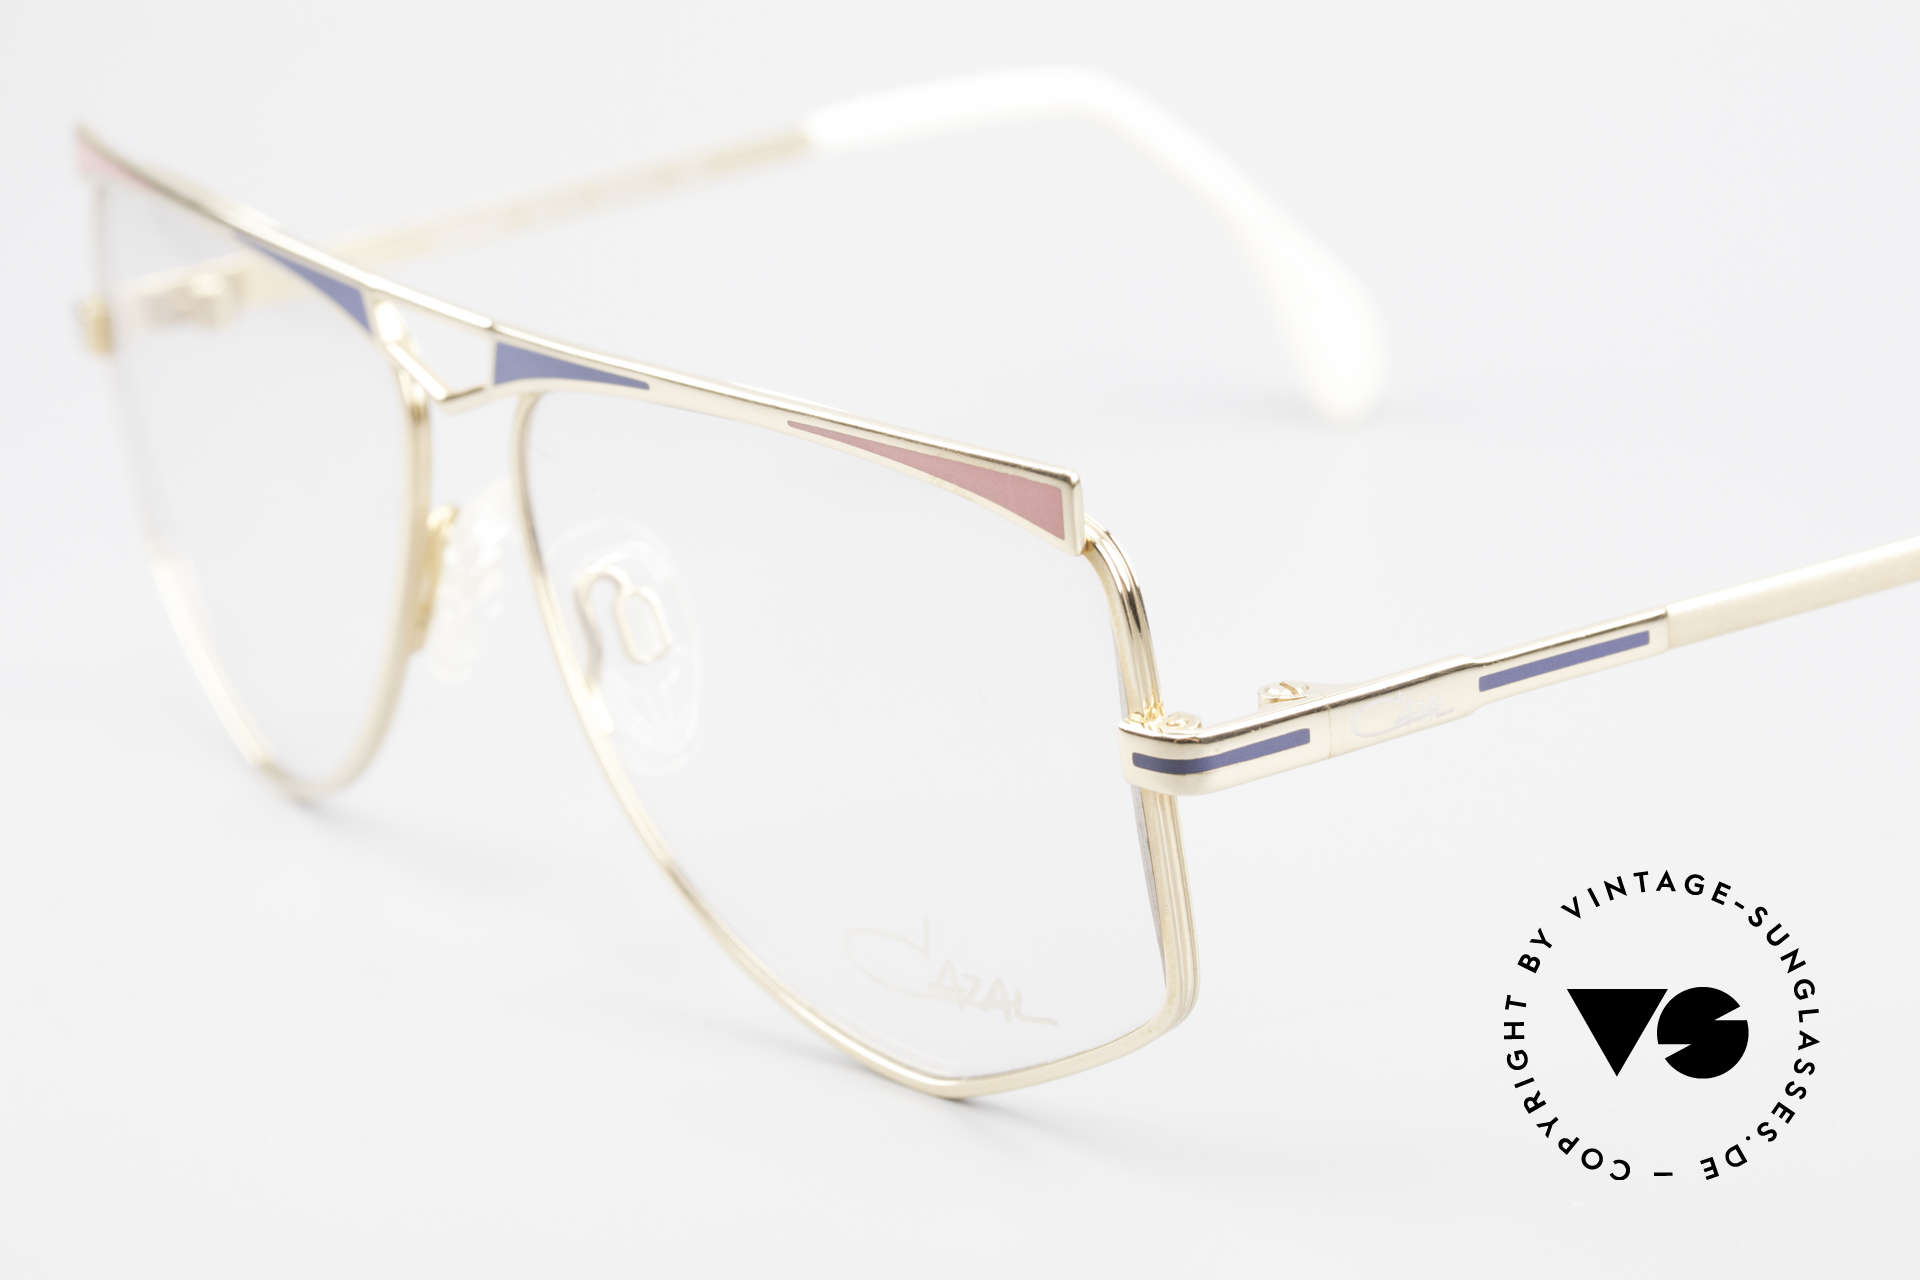 Cazal 227 True Old Vintage Eyeglasses, never worn (like all our Cazal state-of-the-art eyewear), Made for Women